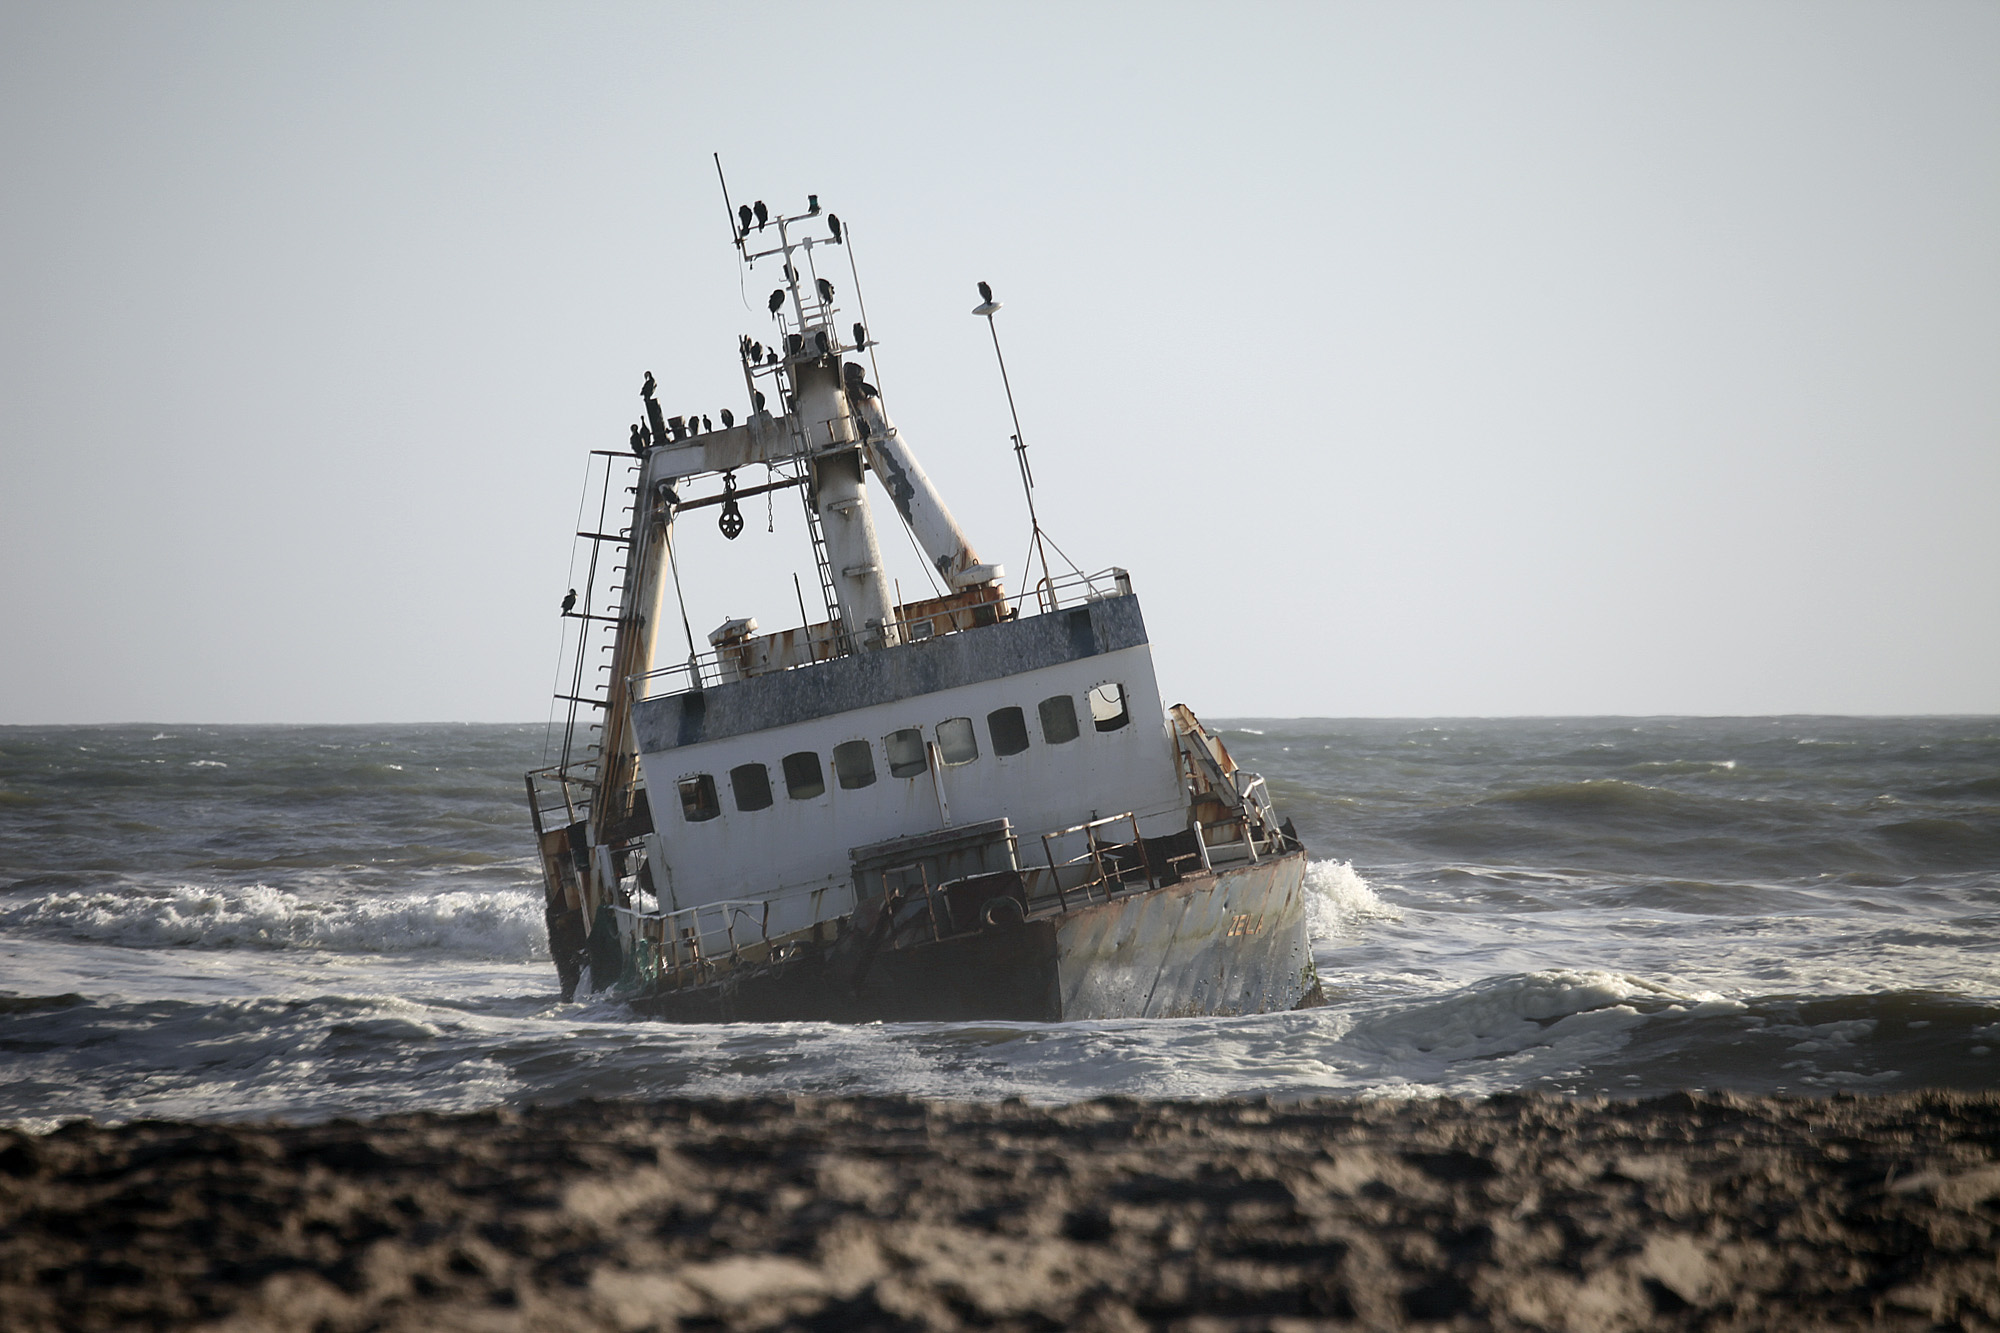 Shipwreck, I guess it really is the Skeleton Coast